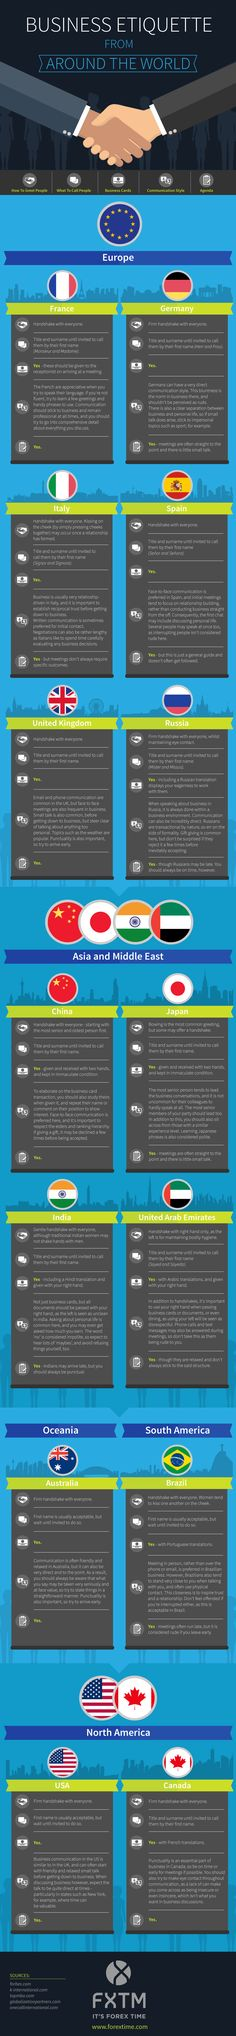 around the worlds  a start and class jobs on pinterestbusiness etiquette from around the world  infographic  business  travel